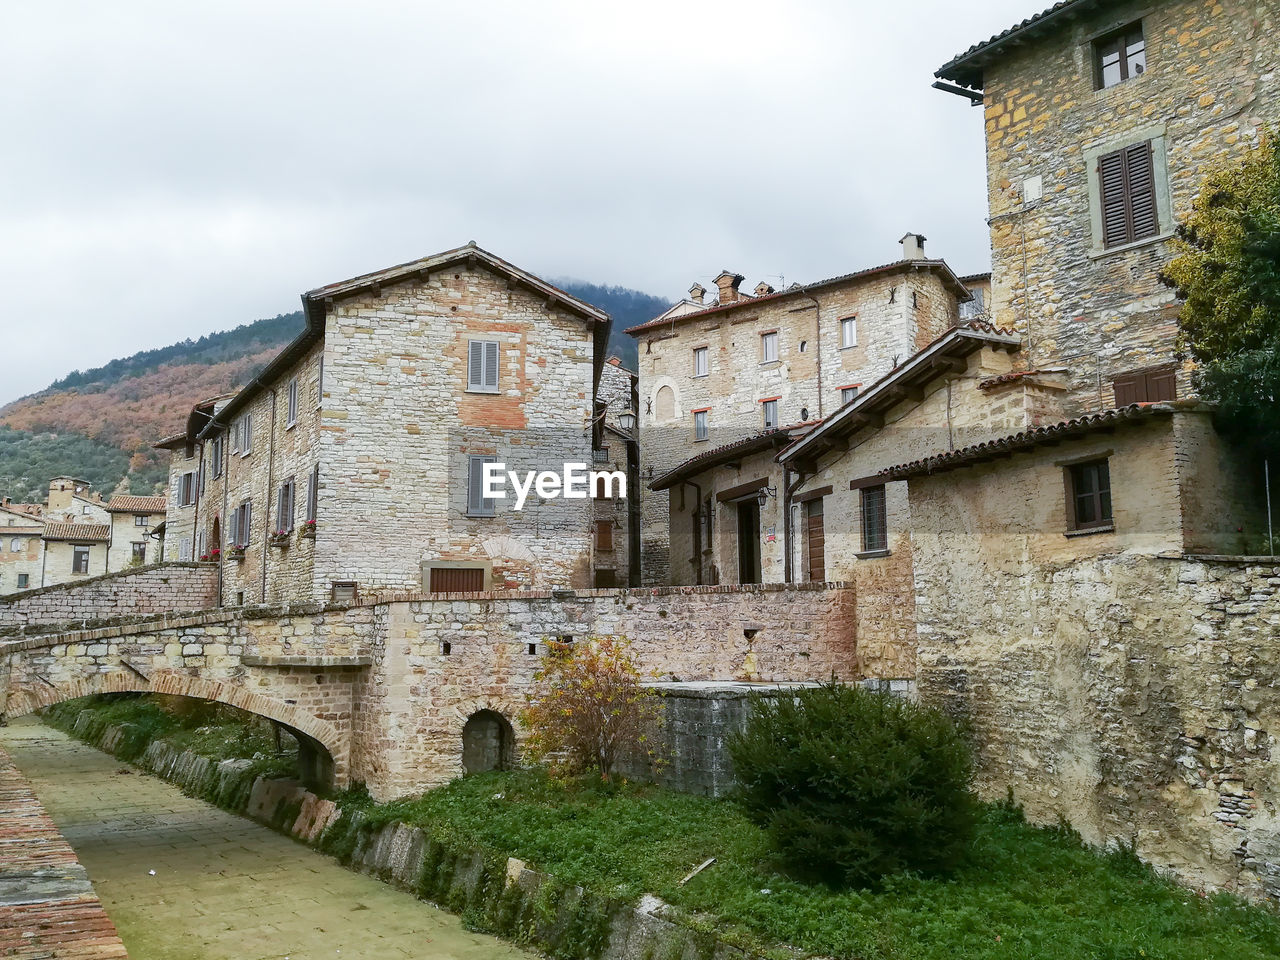 architecture, built structure, building exterior, building, sky, residential district, old, nature, house, cloud - sky, day, no people, wall, window, outdoors, plant, history, the past, low angle view, town, stone wall